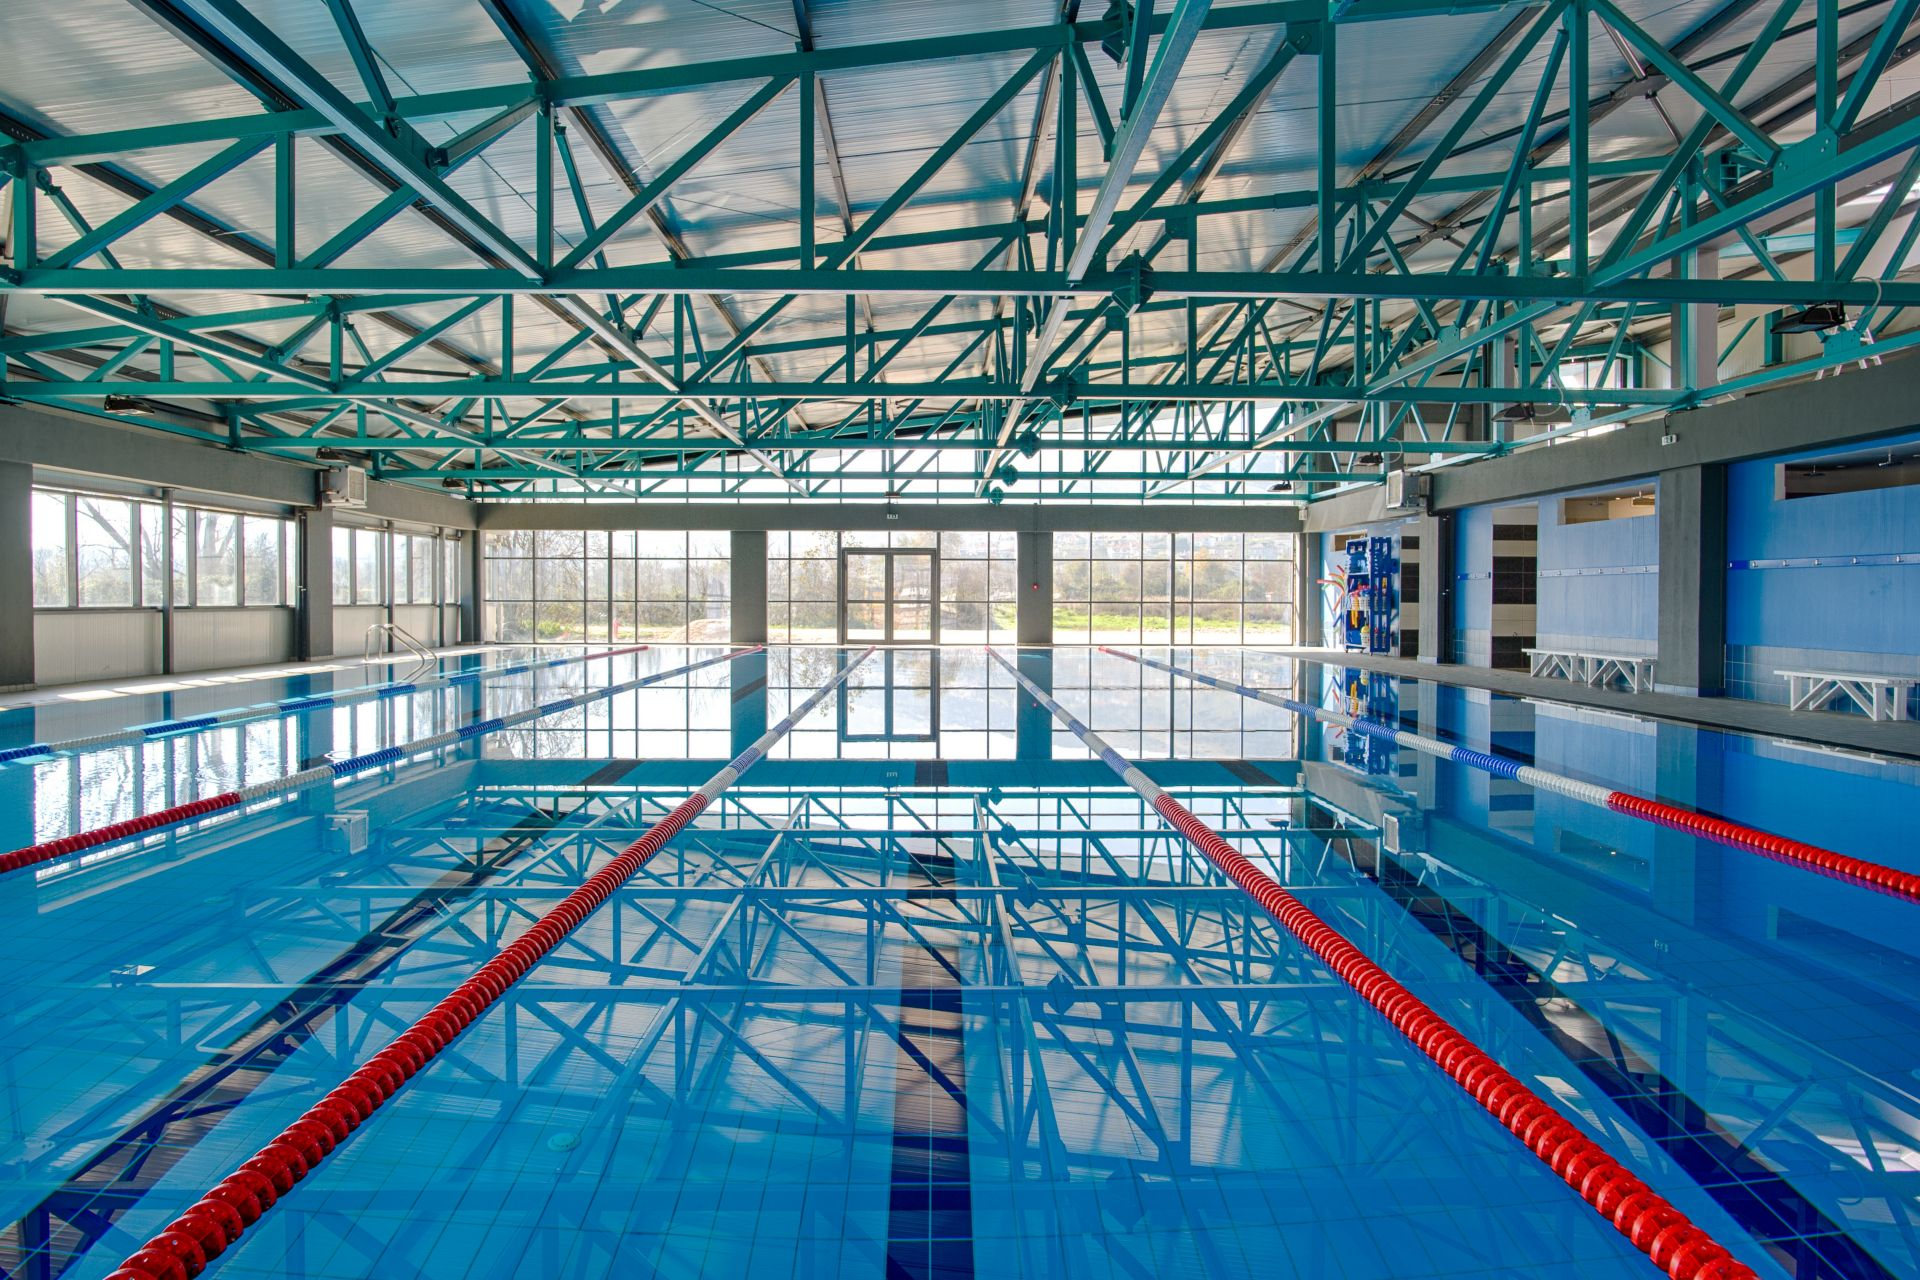 Swimming Pool of the Epirus Sport and Health Center in Ioannina, Greece